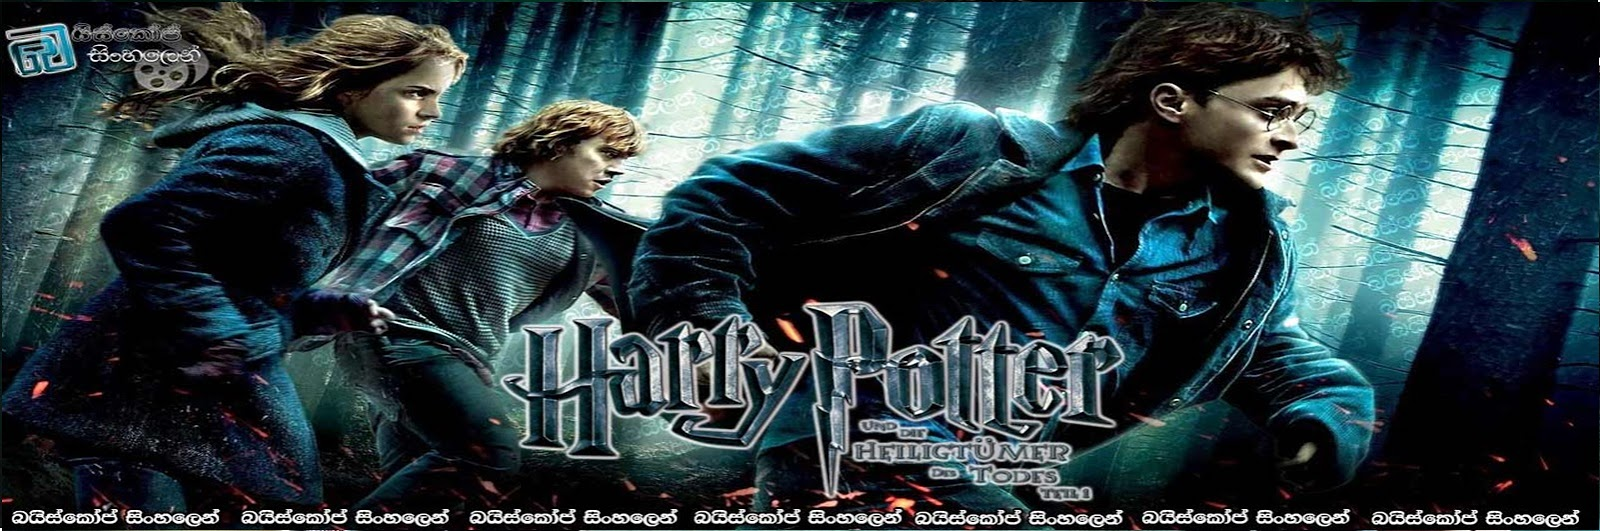 Harry Potter and the Deathly Hallows: Part 1 2010 Full Movie English 720p – 480p ORG BRRip 500MB - 1GB ESubs Free Download